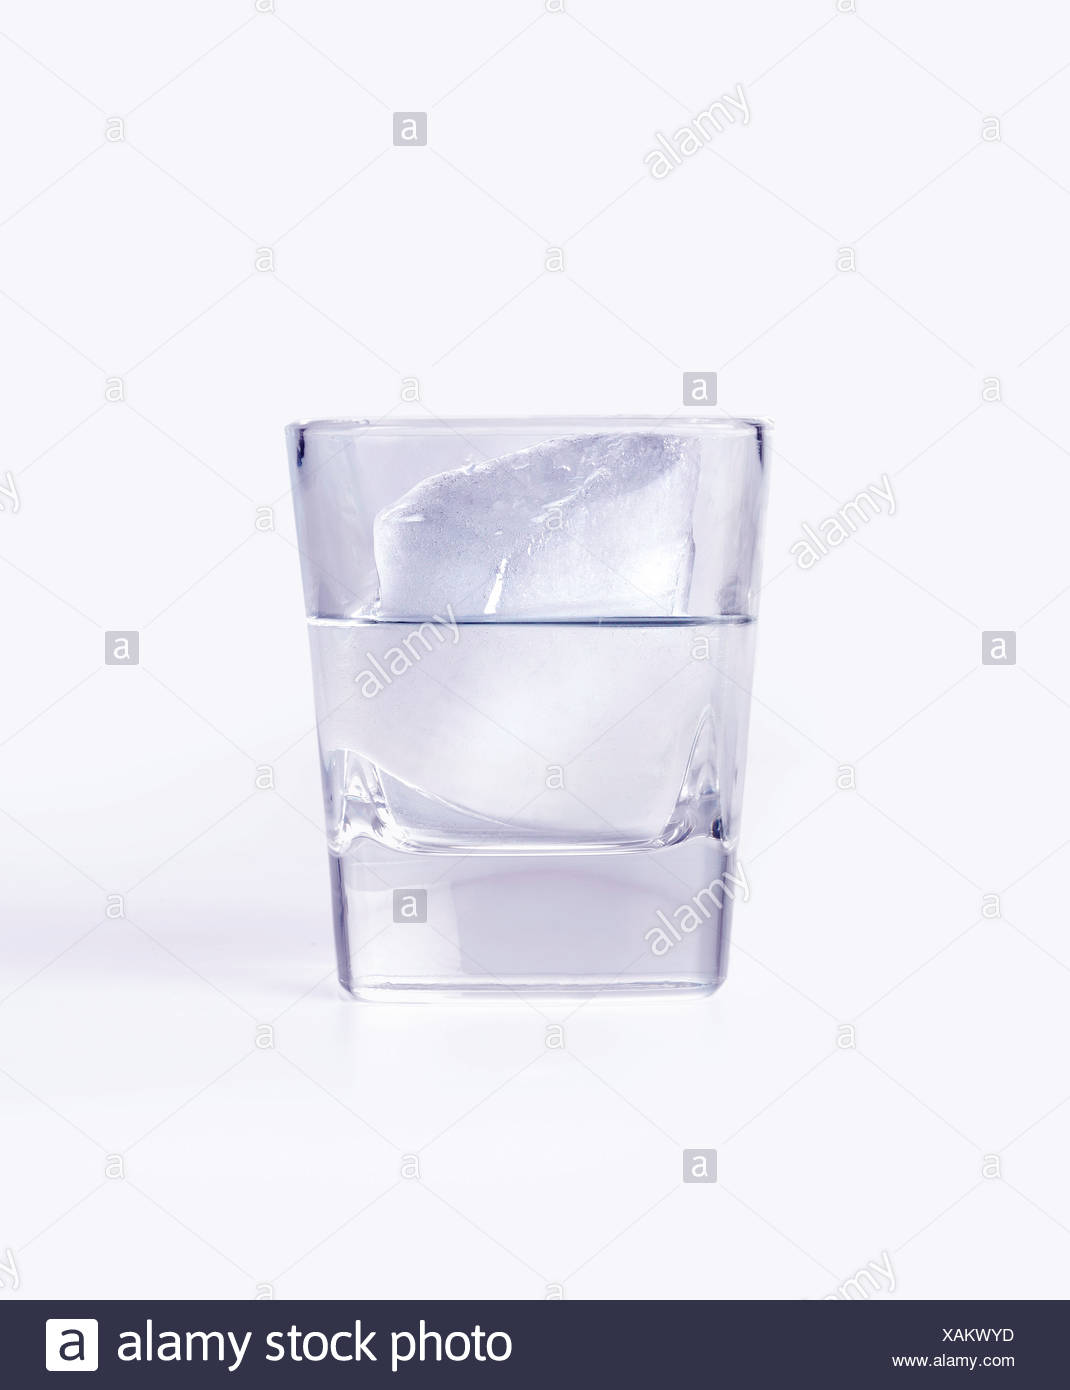 Ice - iceberg in a glass - Stock Image